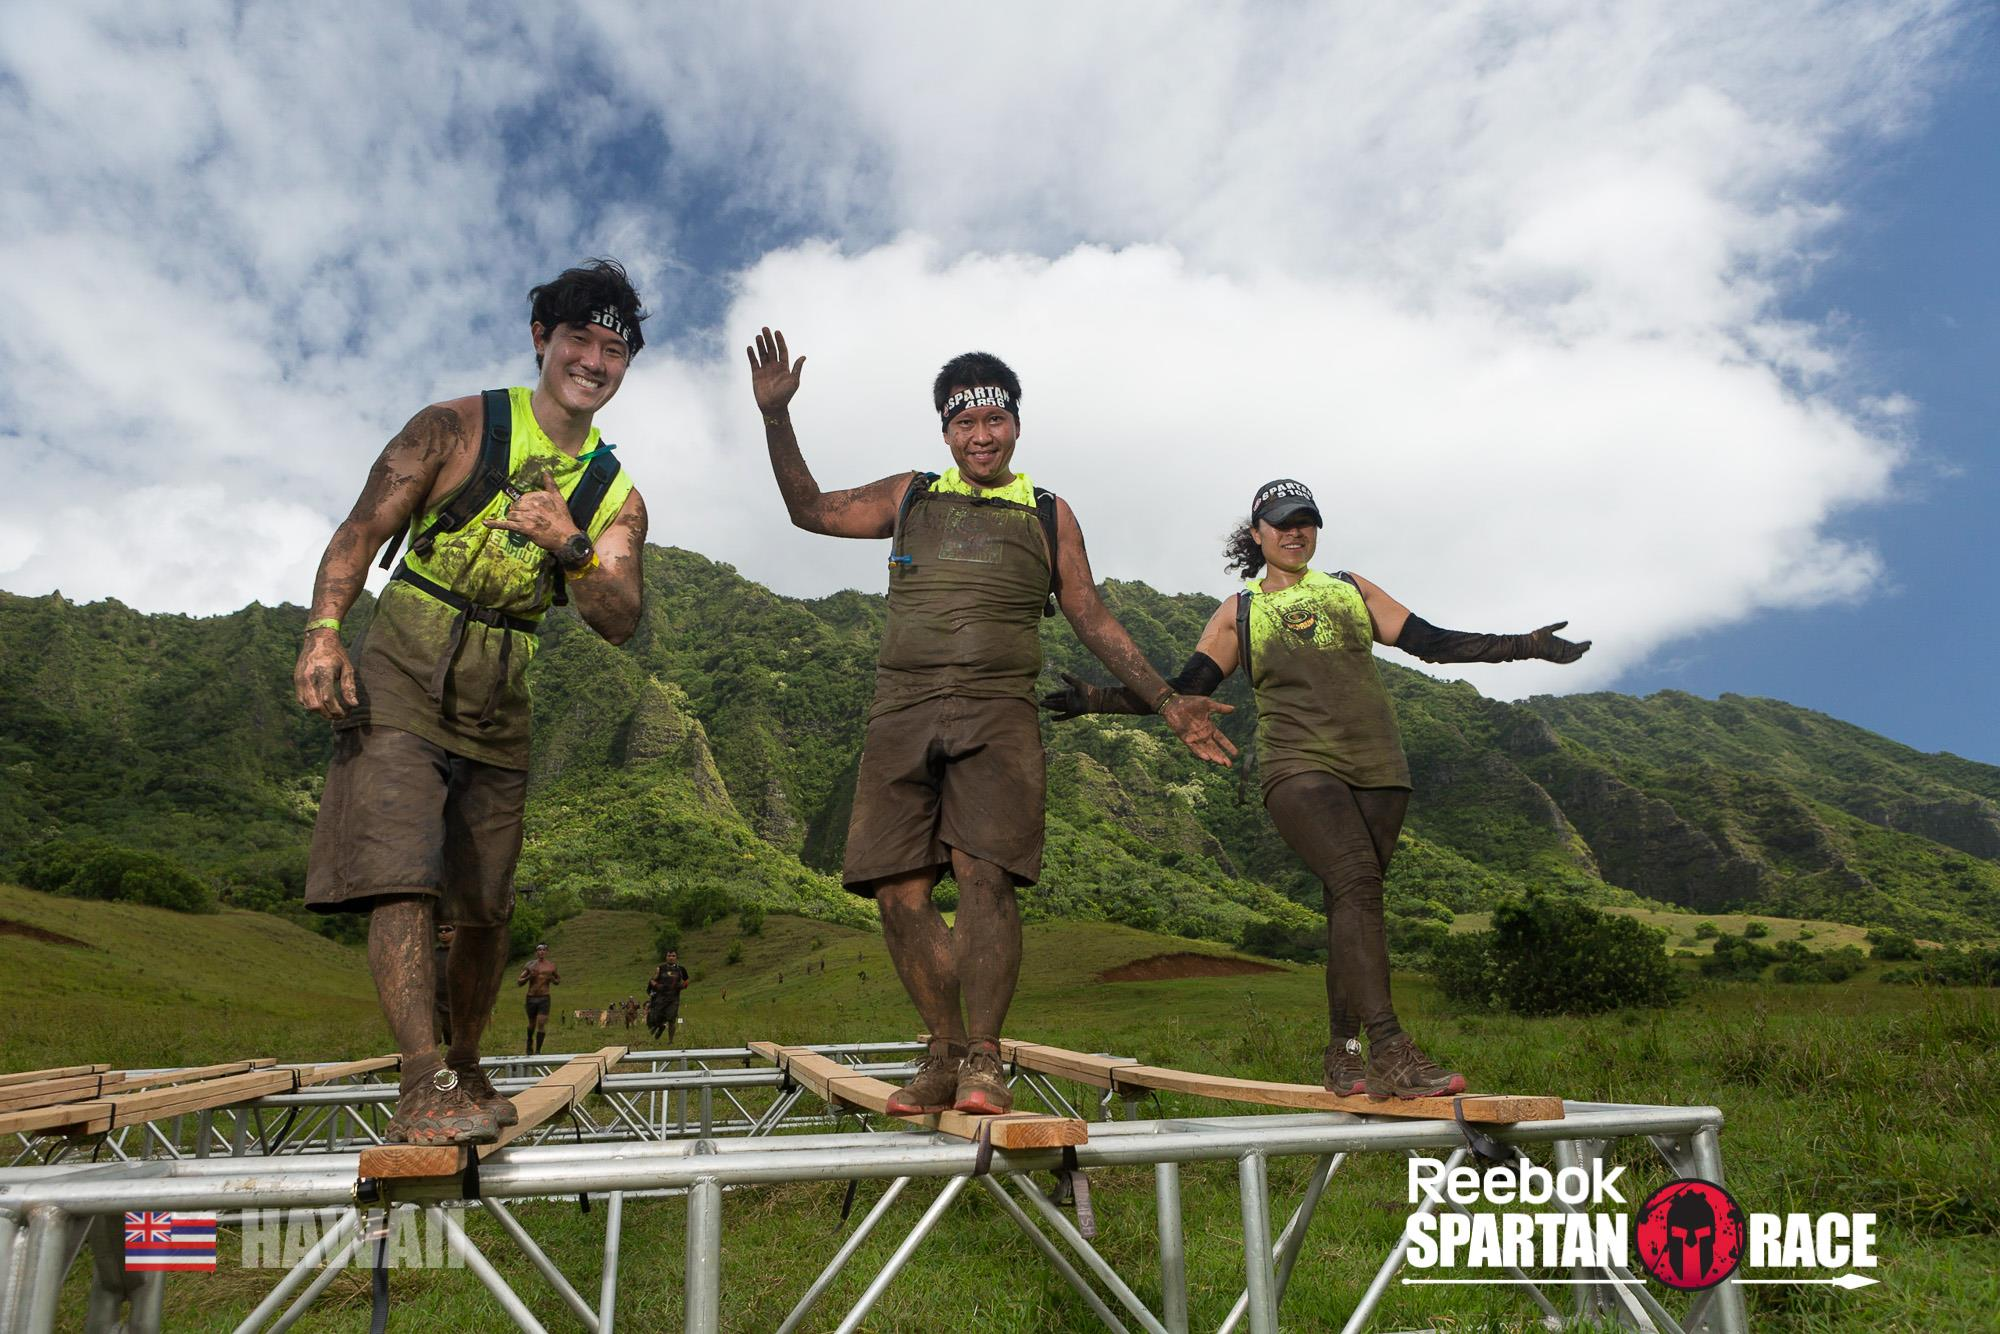 Spartan Race Hawaii We are hosting four race types, Sprint, Super, Beast and Ultra Beast in one weekend! You can run an individual Sprint, Super, Beast or the Ultra Beast, or if you dare, you can take on the ultimate Spartan Trifecta Challenge, by racing all three race types – Sprint + Super + Beast or Ultra Beast all in one weekend, and.